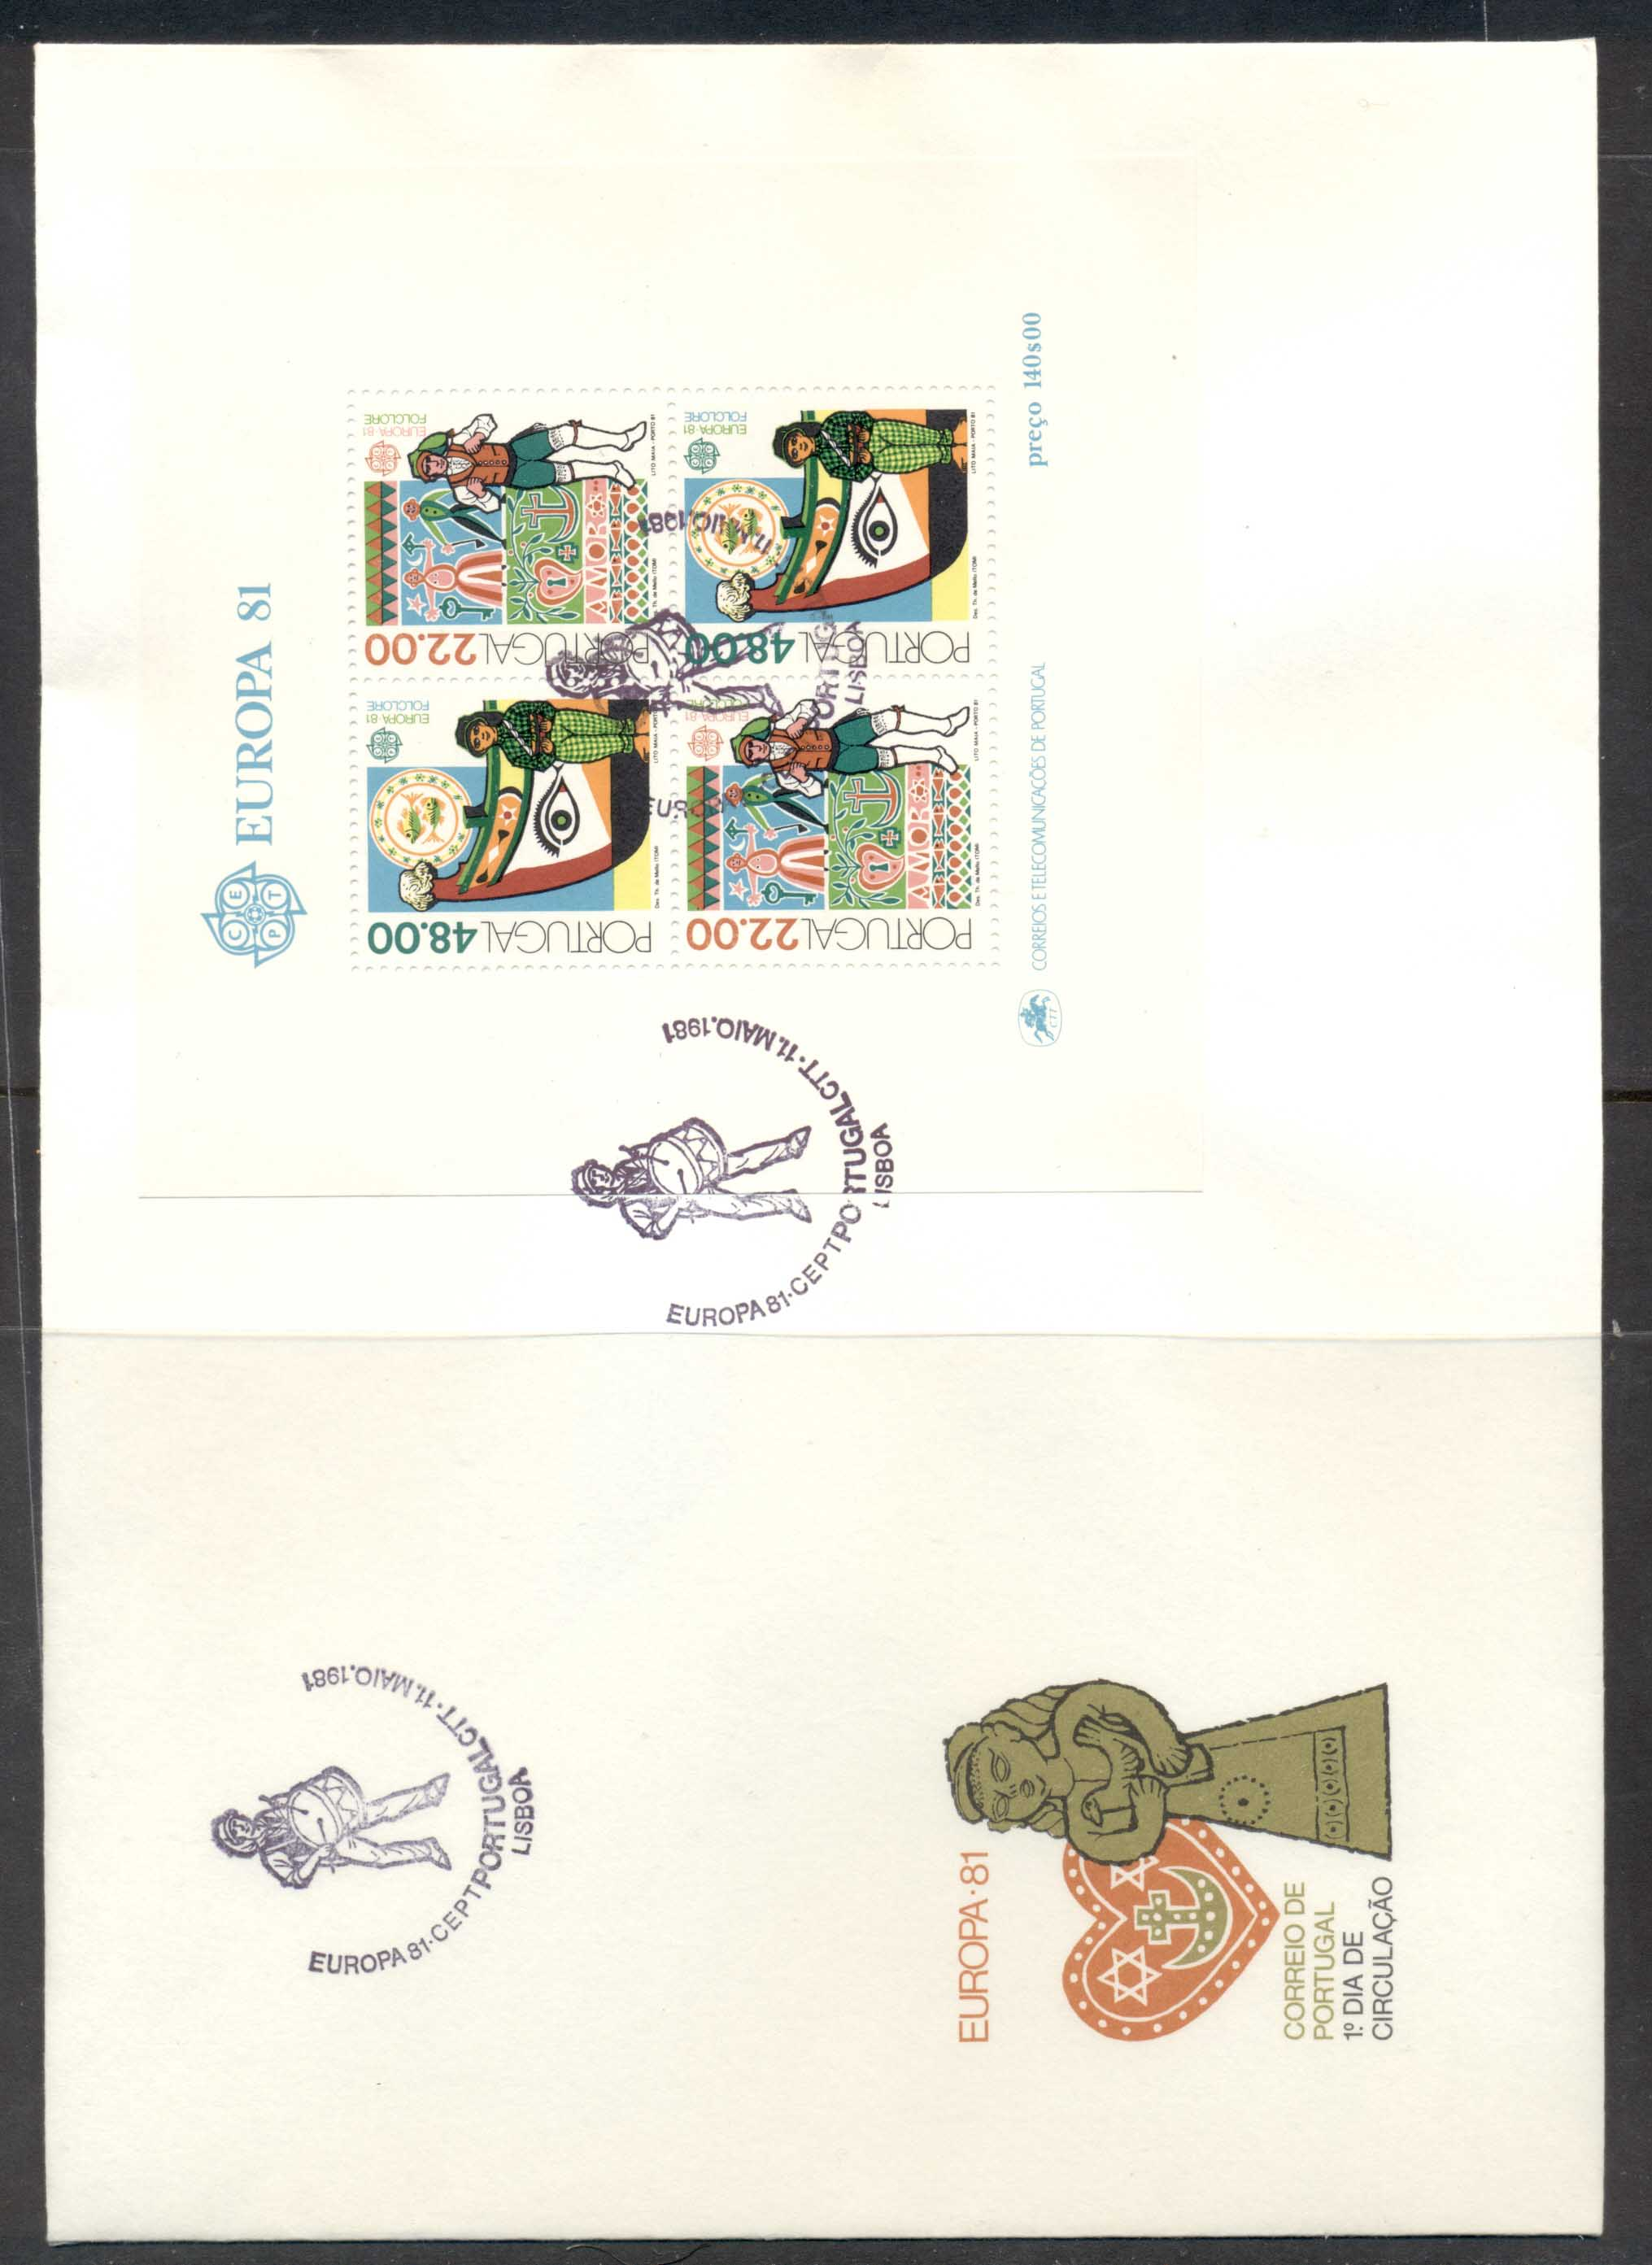 Portugal 1981 Europa Folklore XLMS FDC